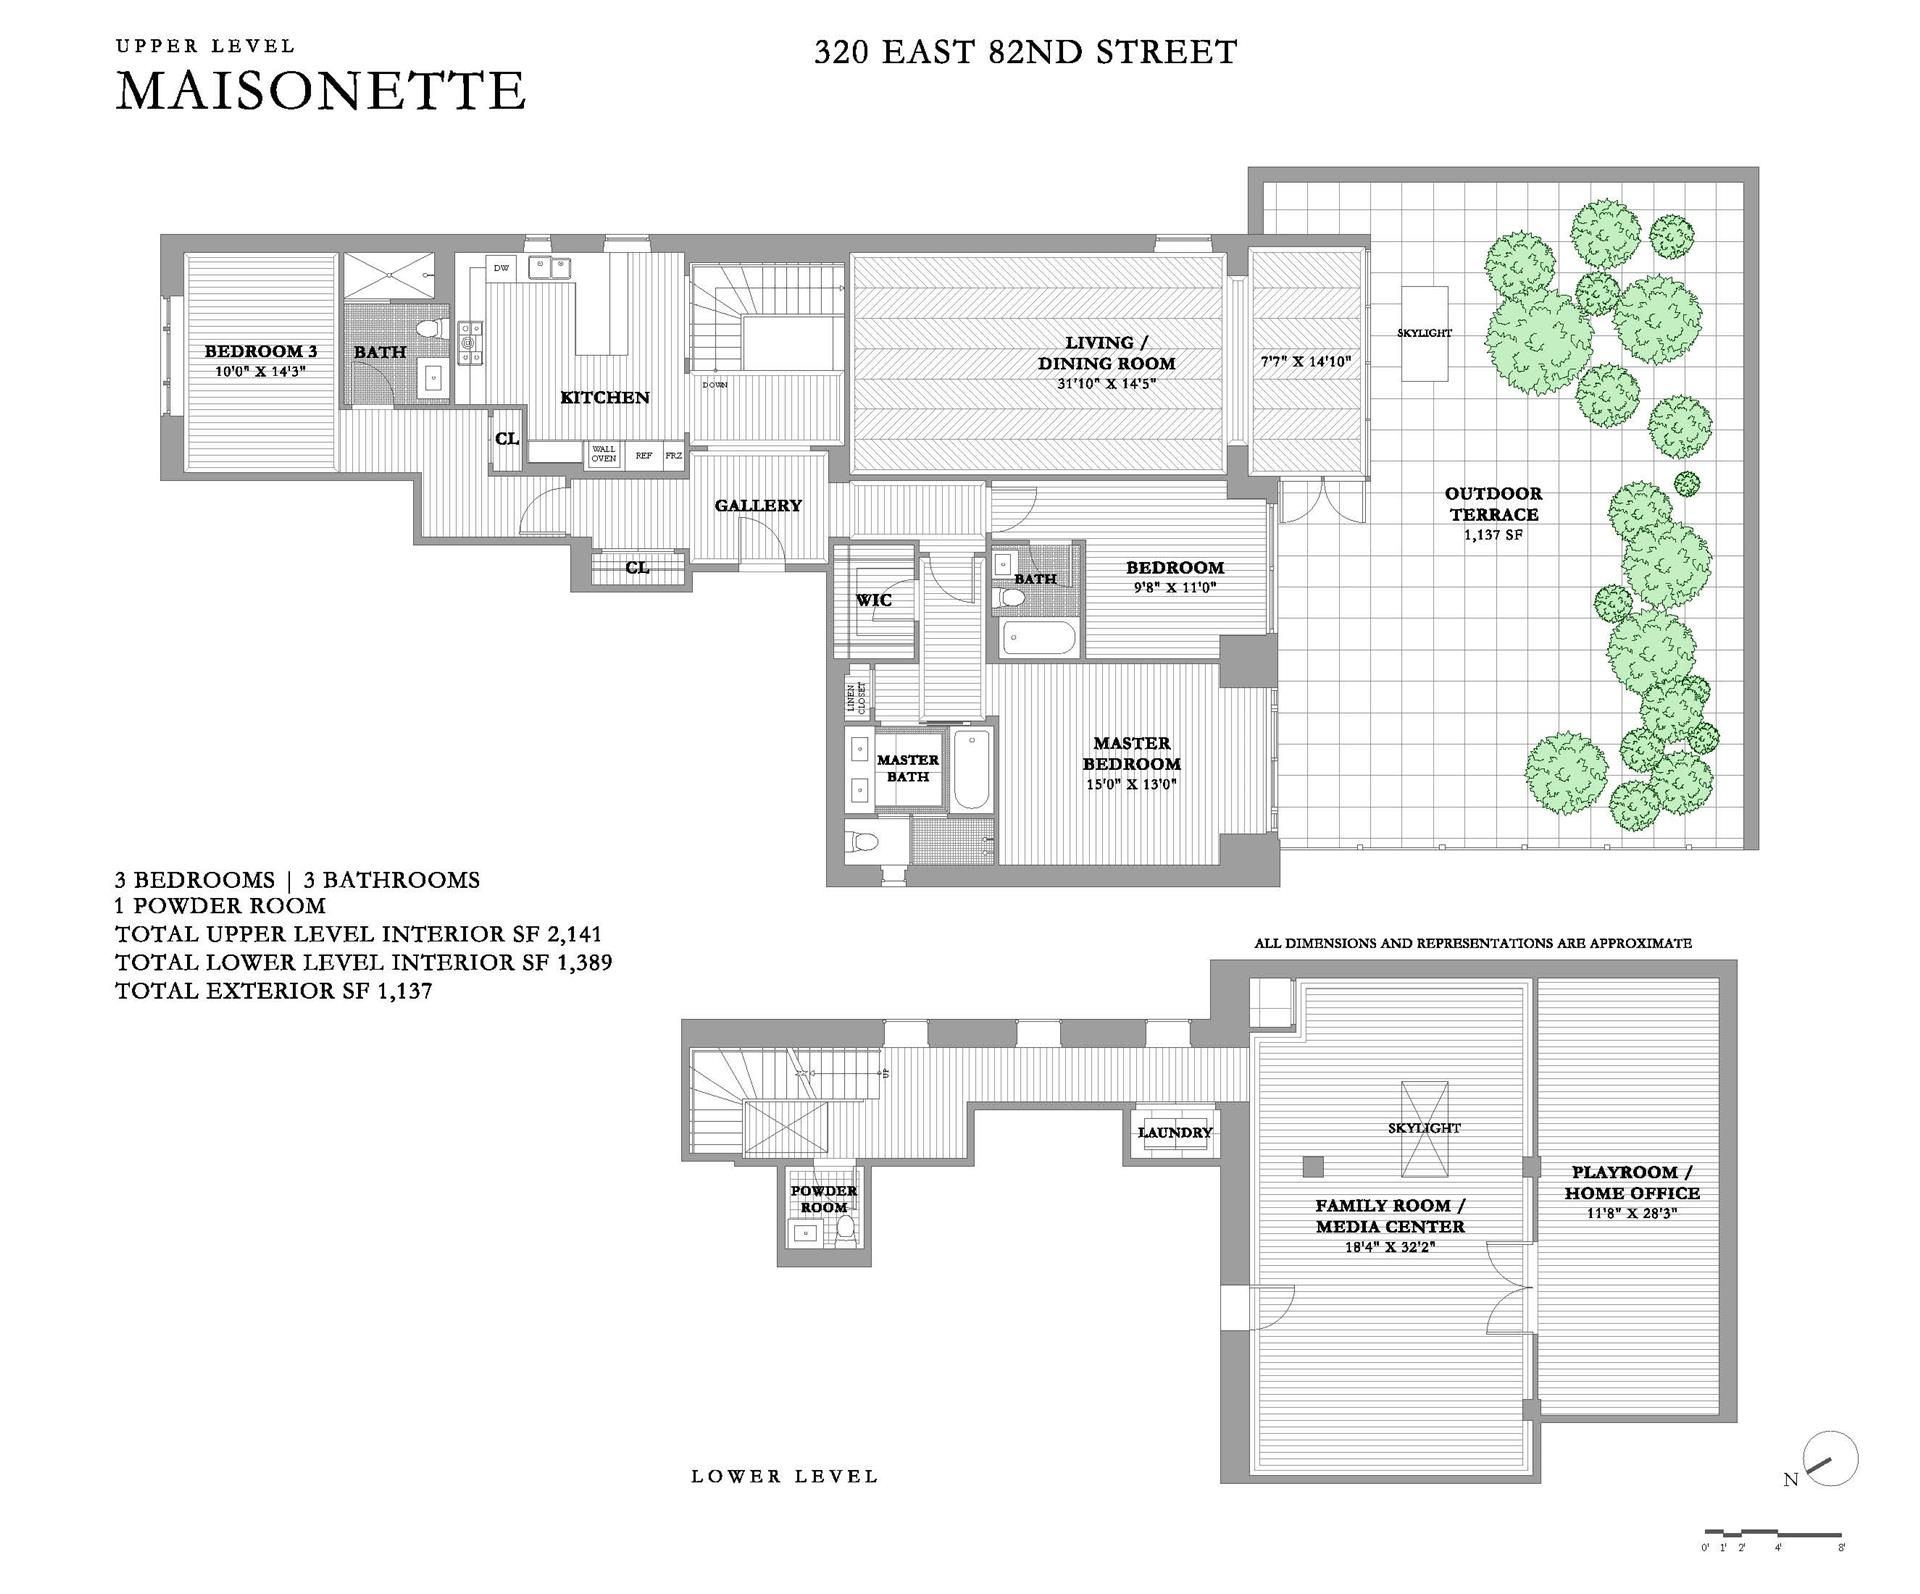 Floor plan of 320 East 82nd St, MAISONETTE - Upper East Side, New York